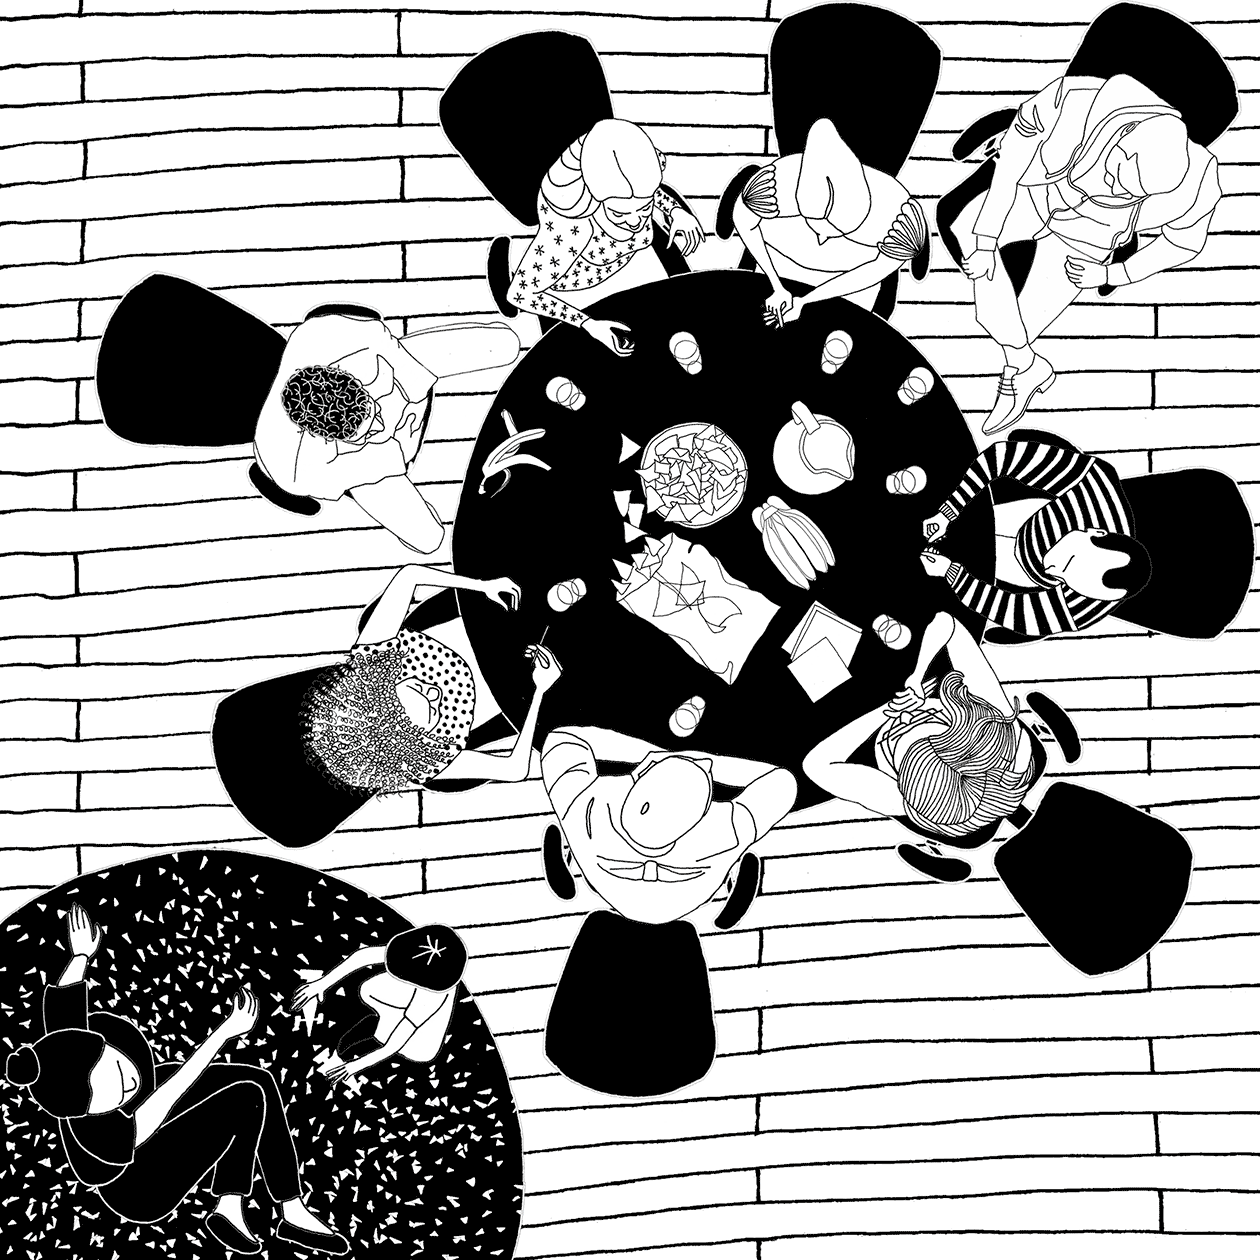 Black and white drawing showing an overhead view of a round table. Sitting around the table are a group of neighborhood residents, having a conversation. Snacks are also sitting on the table. Next to the table, a child is playing on the floor with another person.